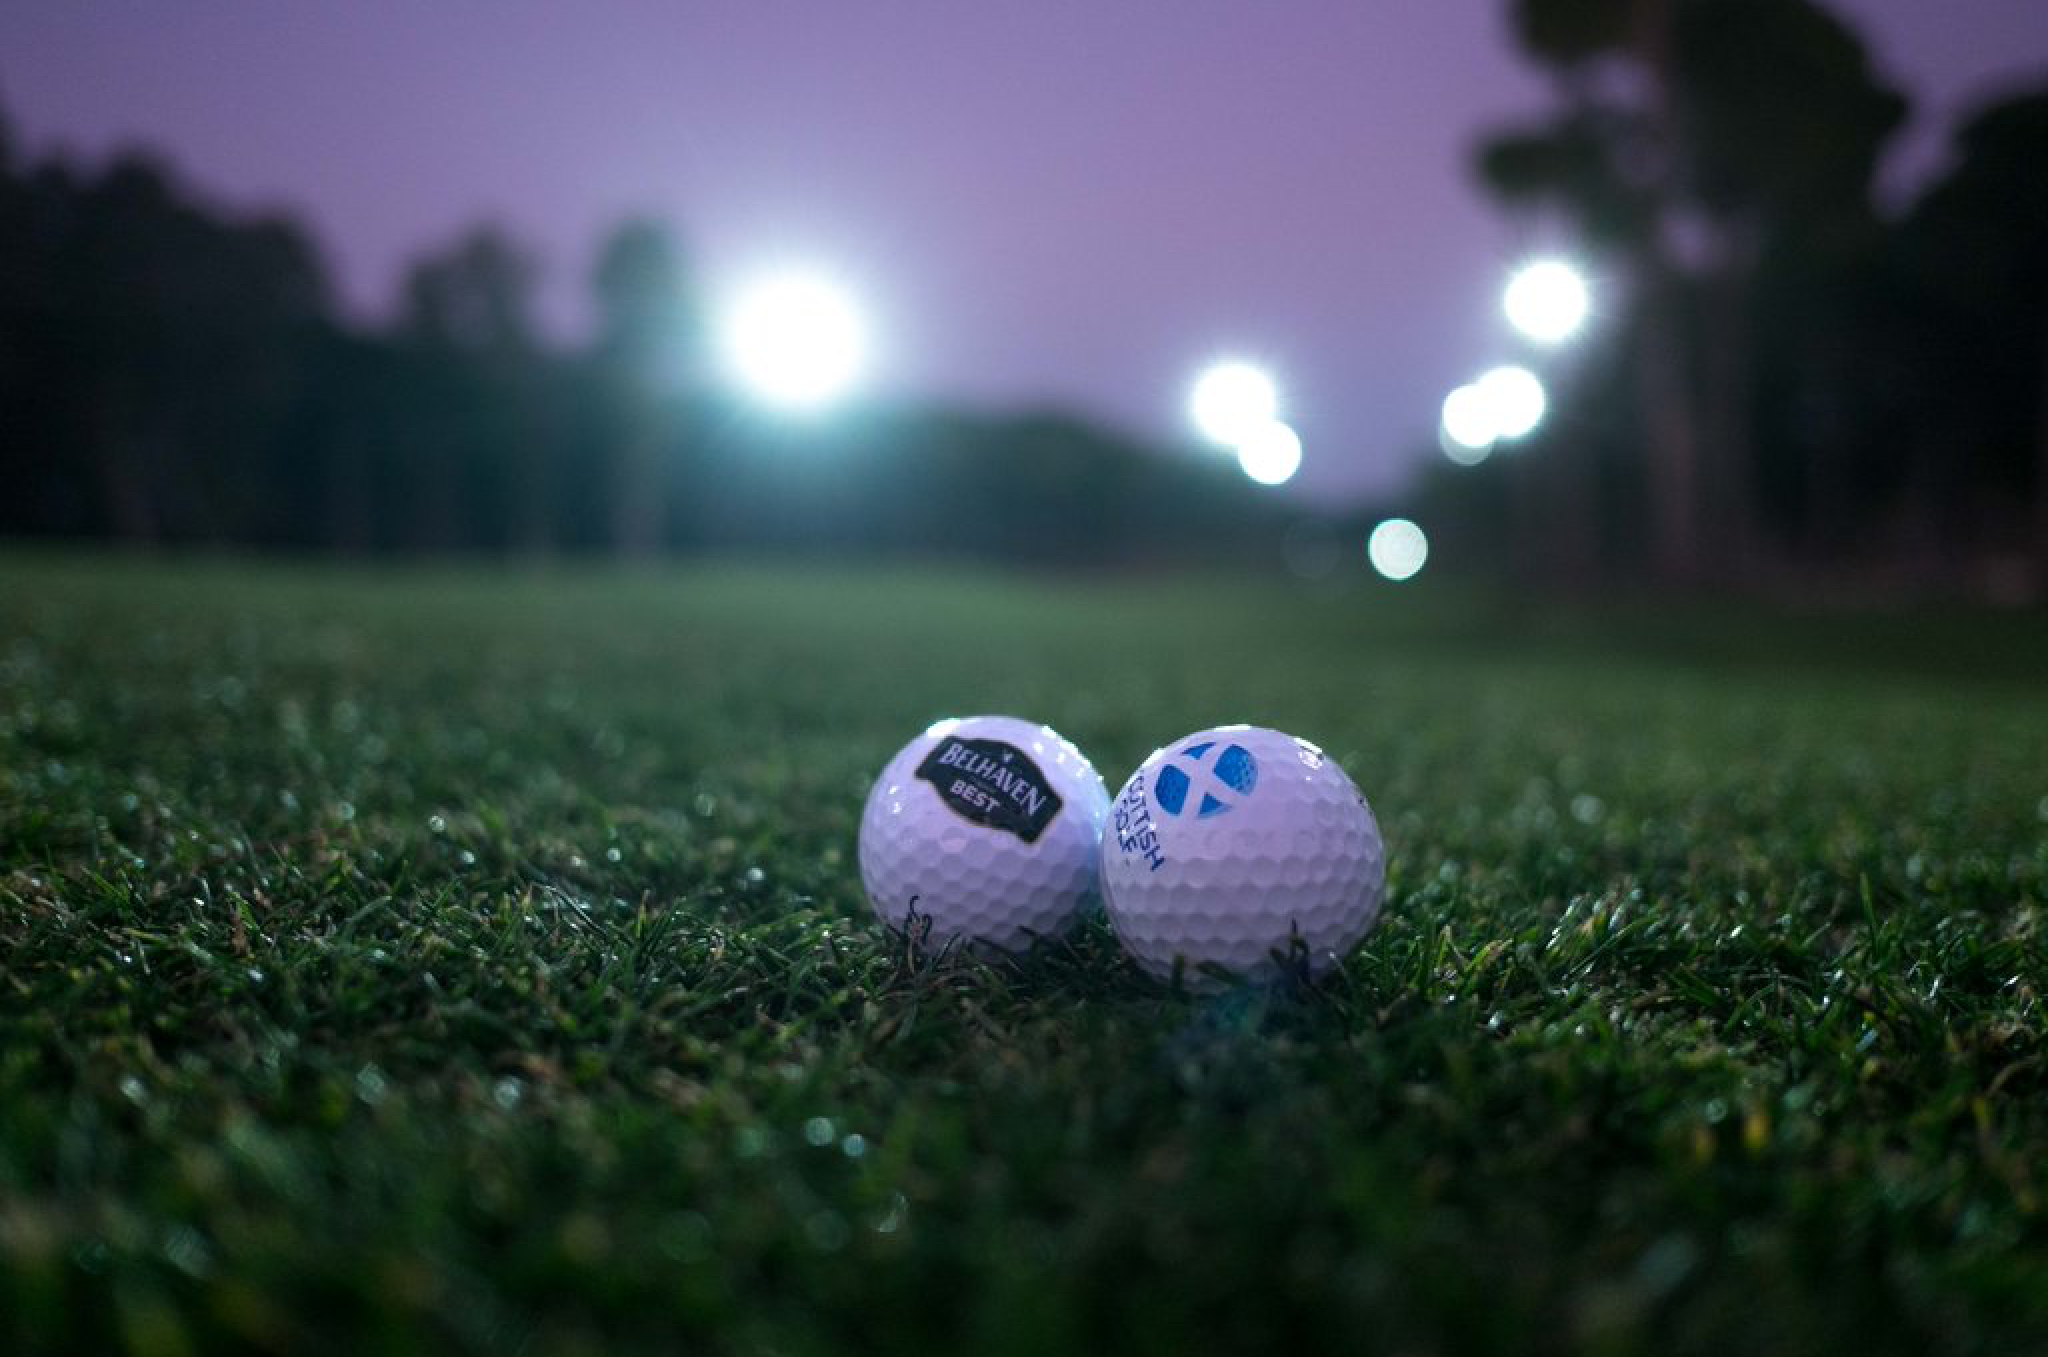 Regnum also has a floodlit golf course allowing golfers to play at night